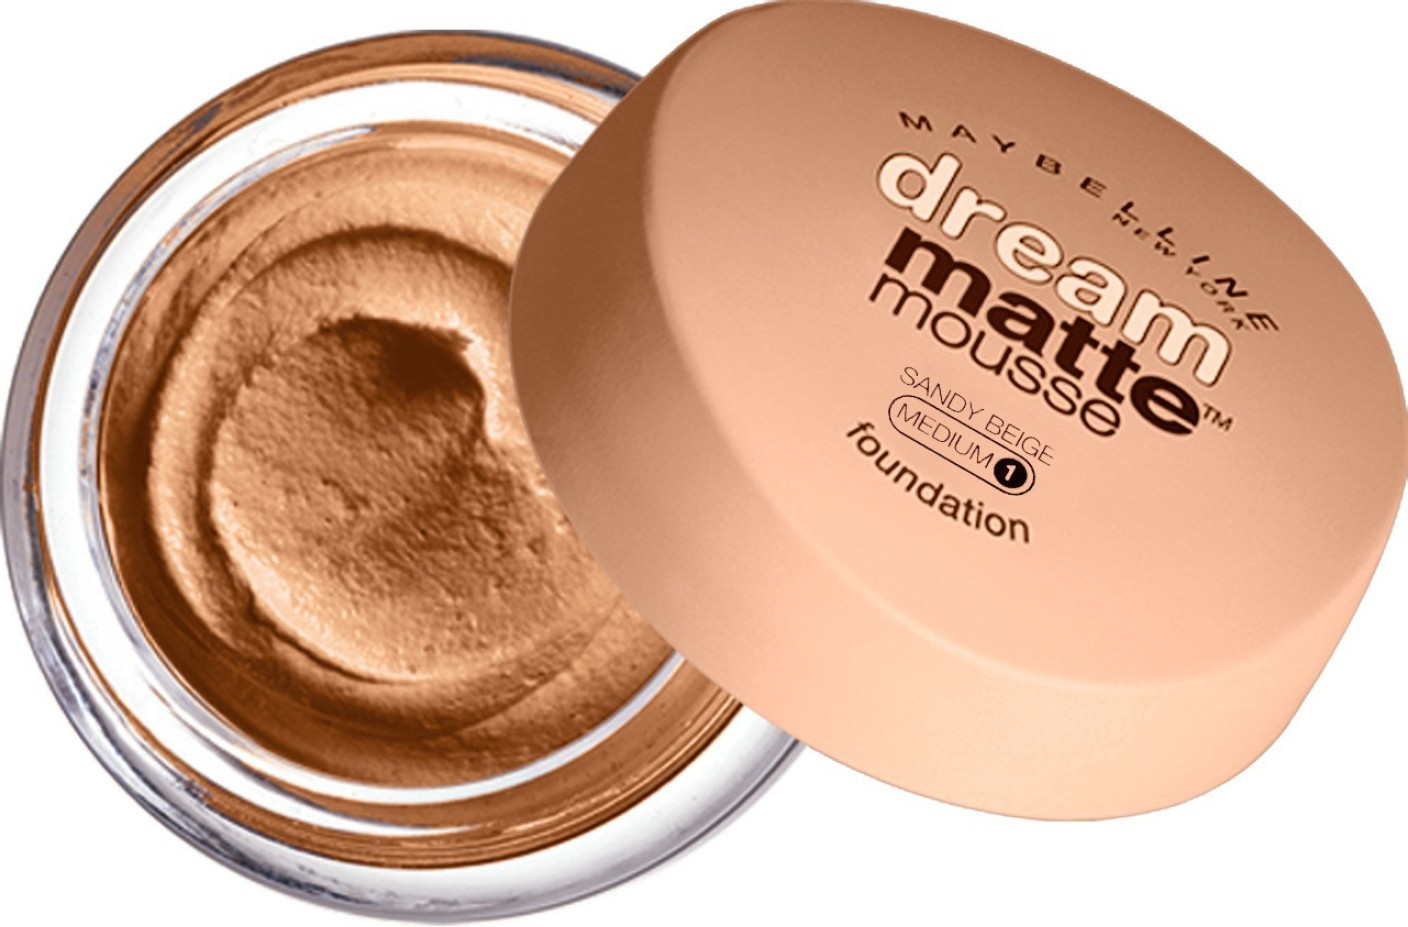 MAKEUP | Maybelline Mousse Foundation - Maybelline Dream